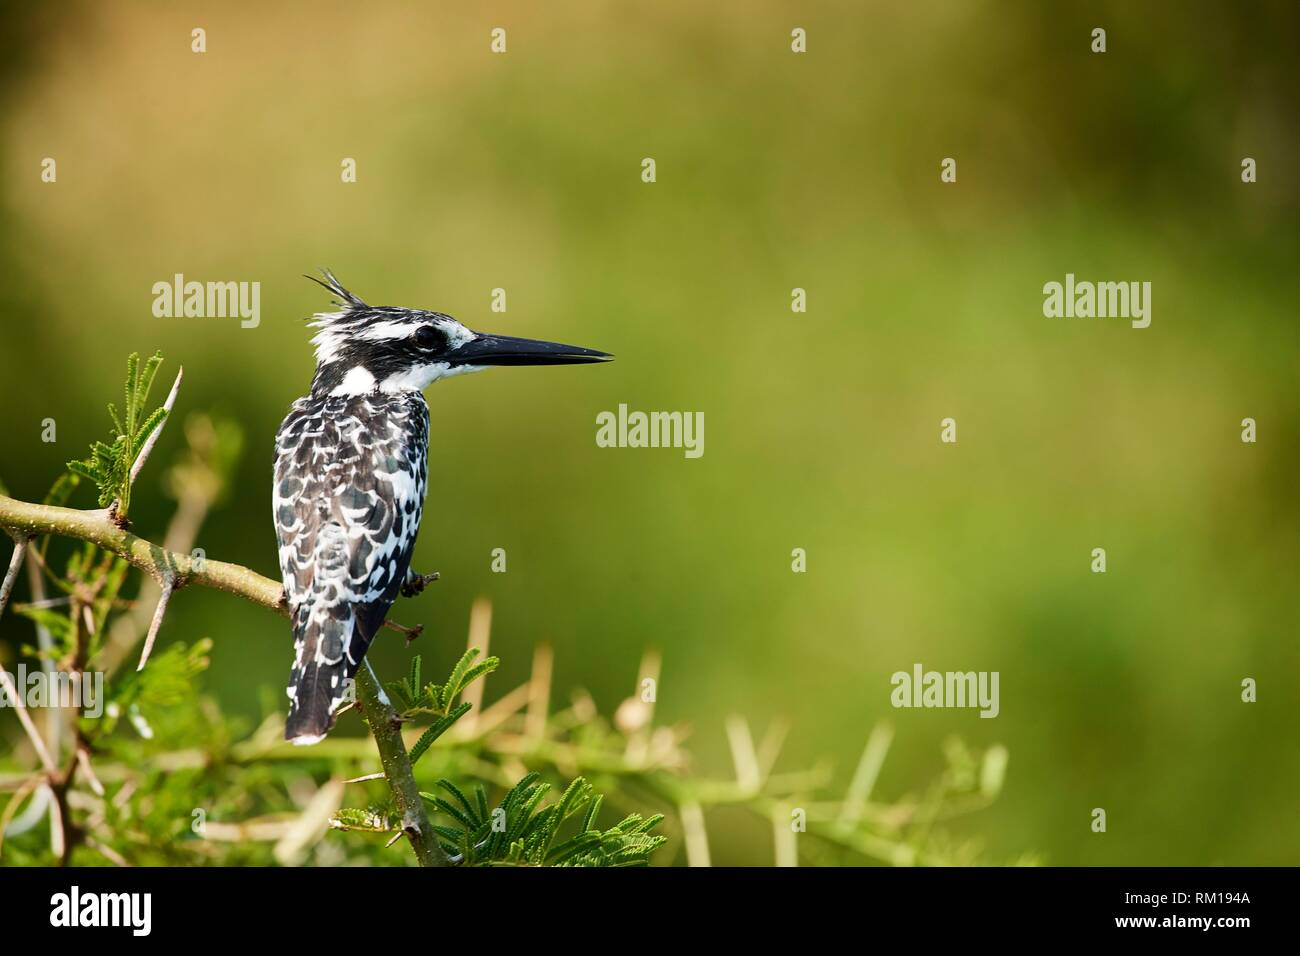 Pied Kingfisher (Ceryle rudis) perched on a branch. Queen Elizabeth National Park, Uganda, Africa. - Stock Image